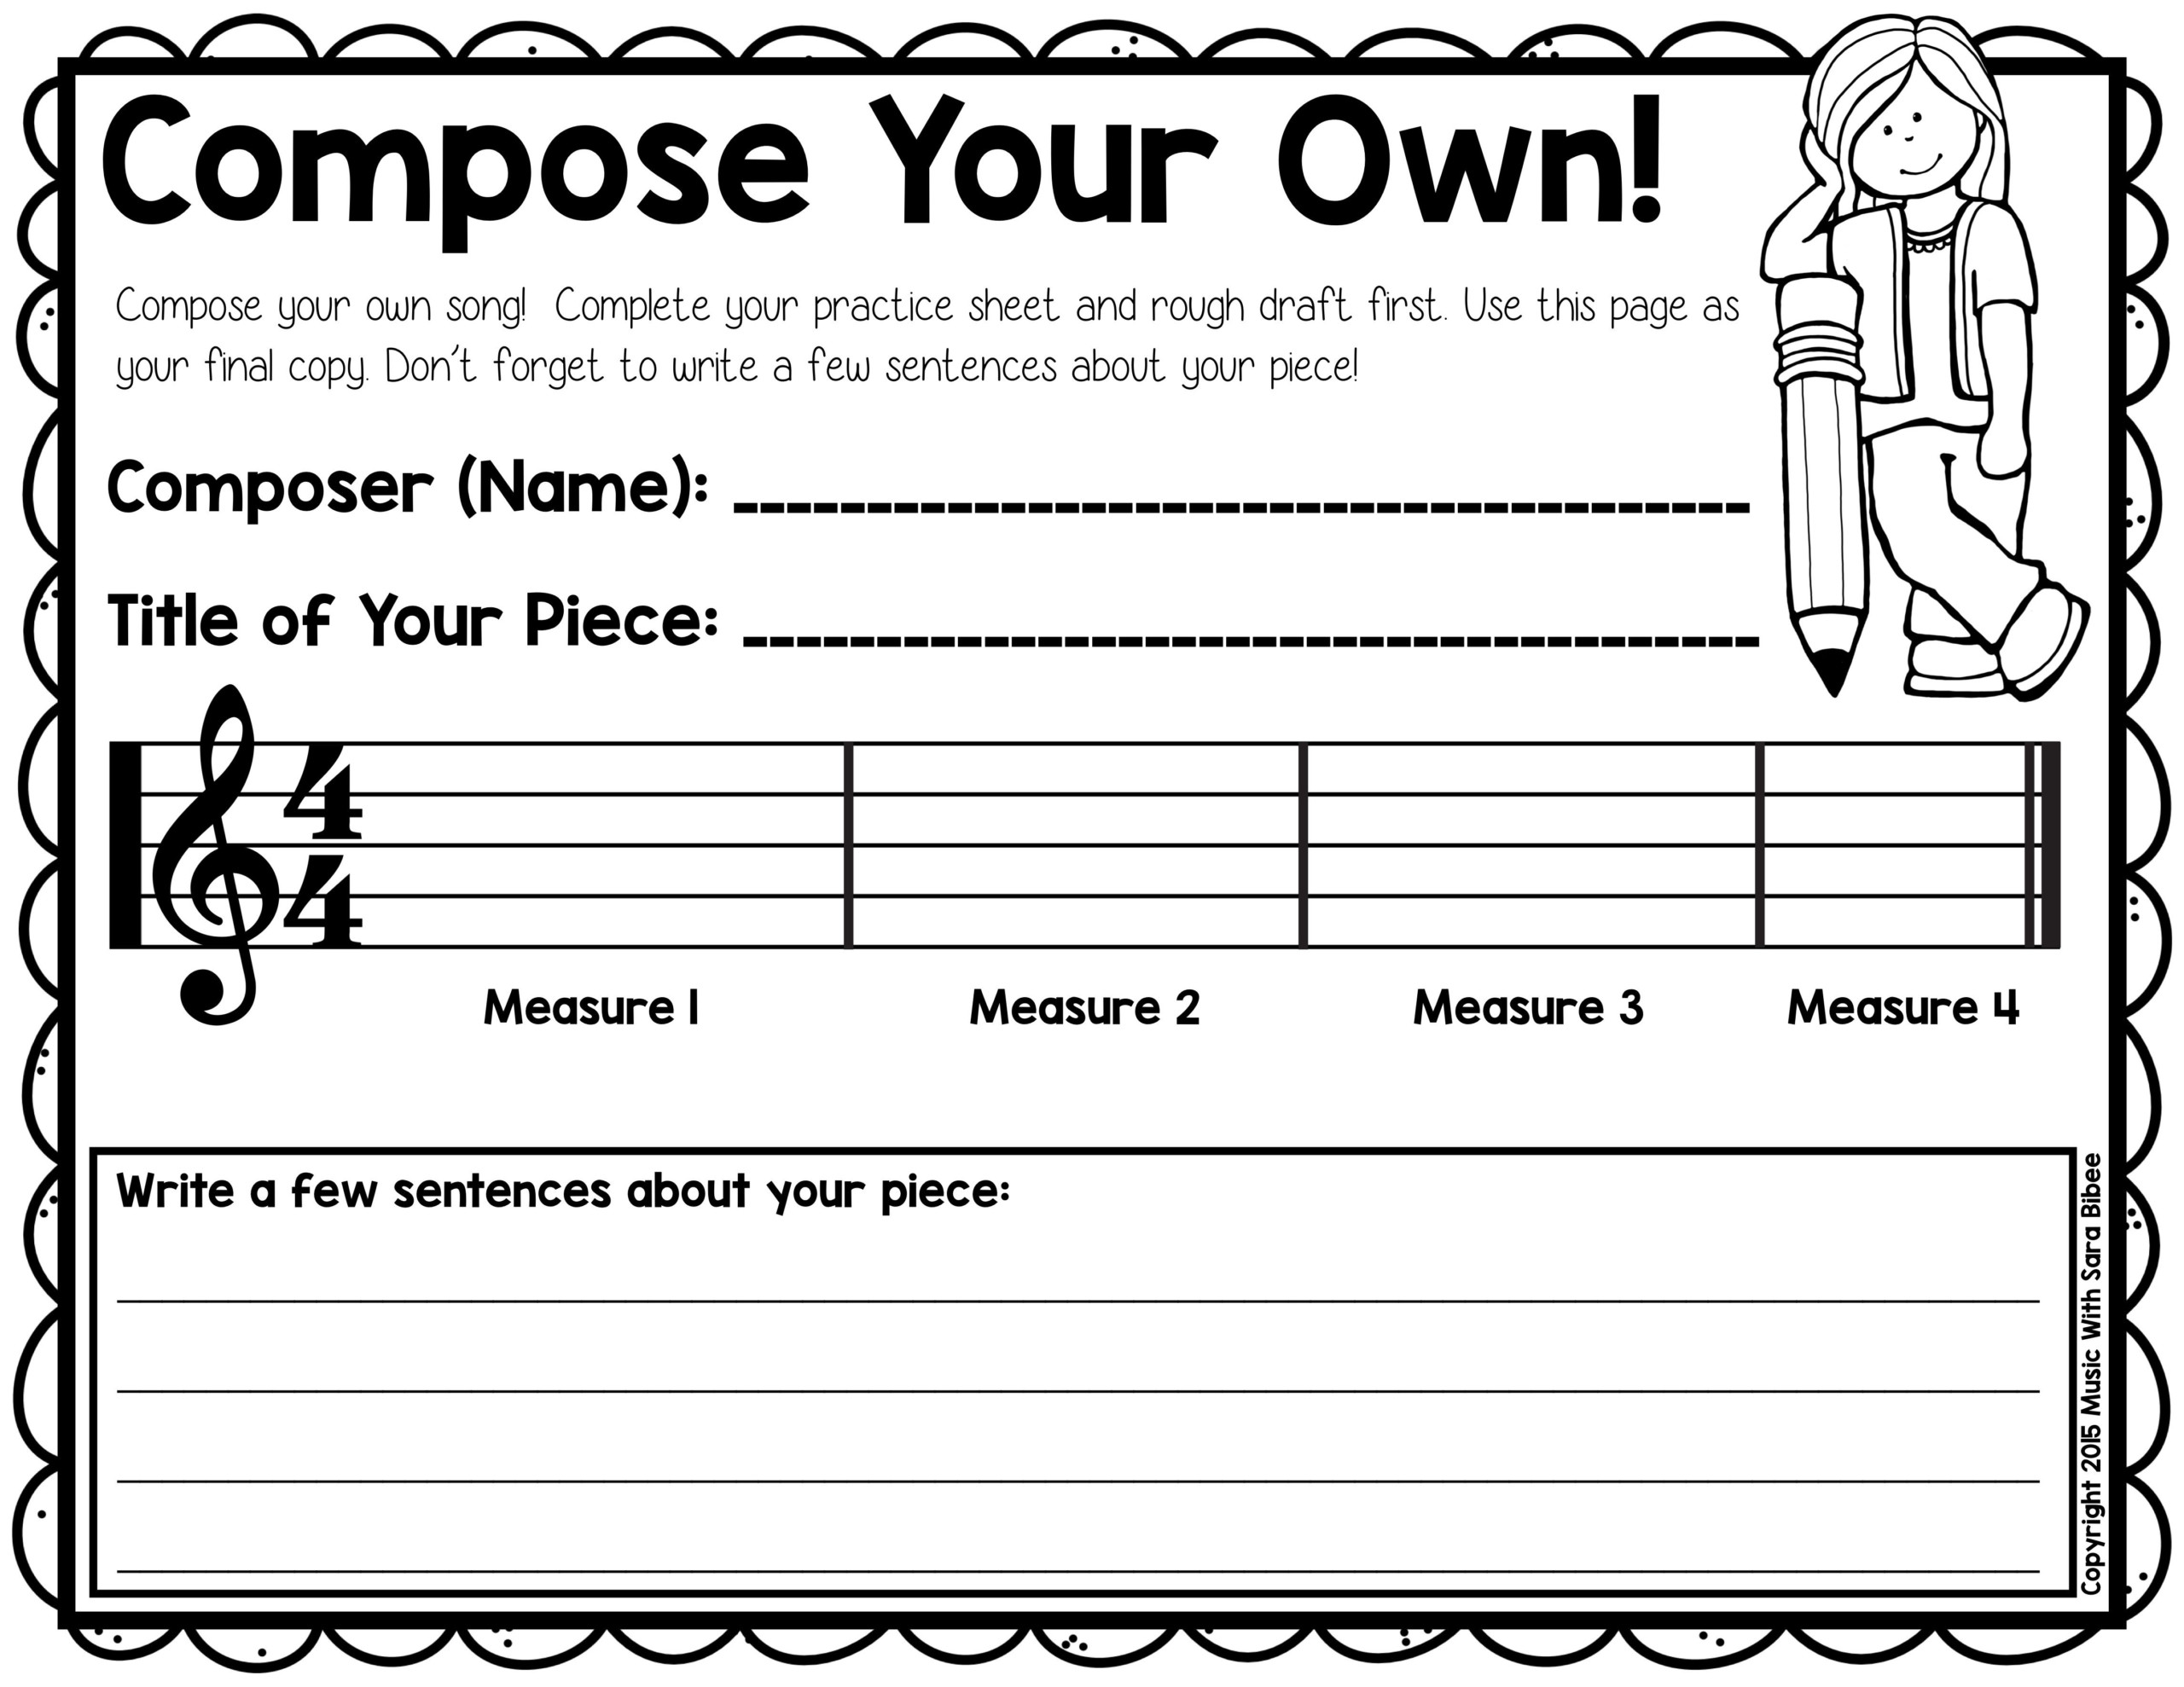 Free Composition Activity That Can Be Used For Recorders Or